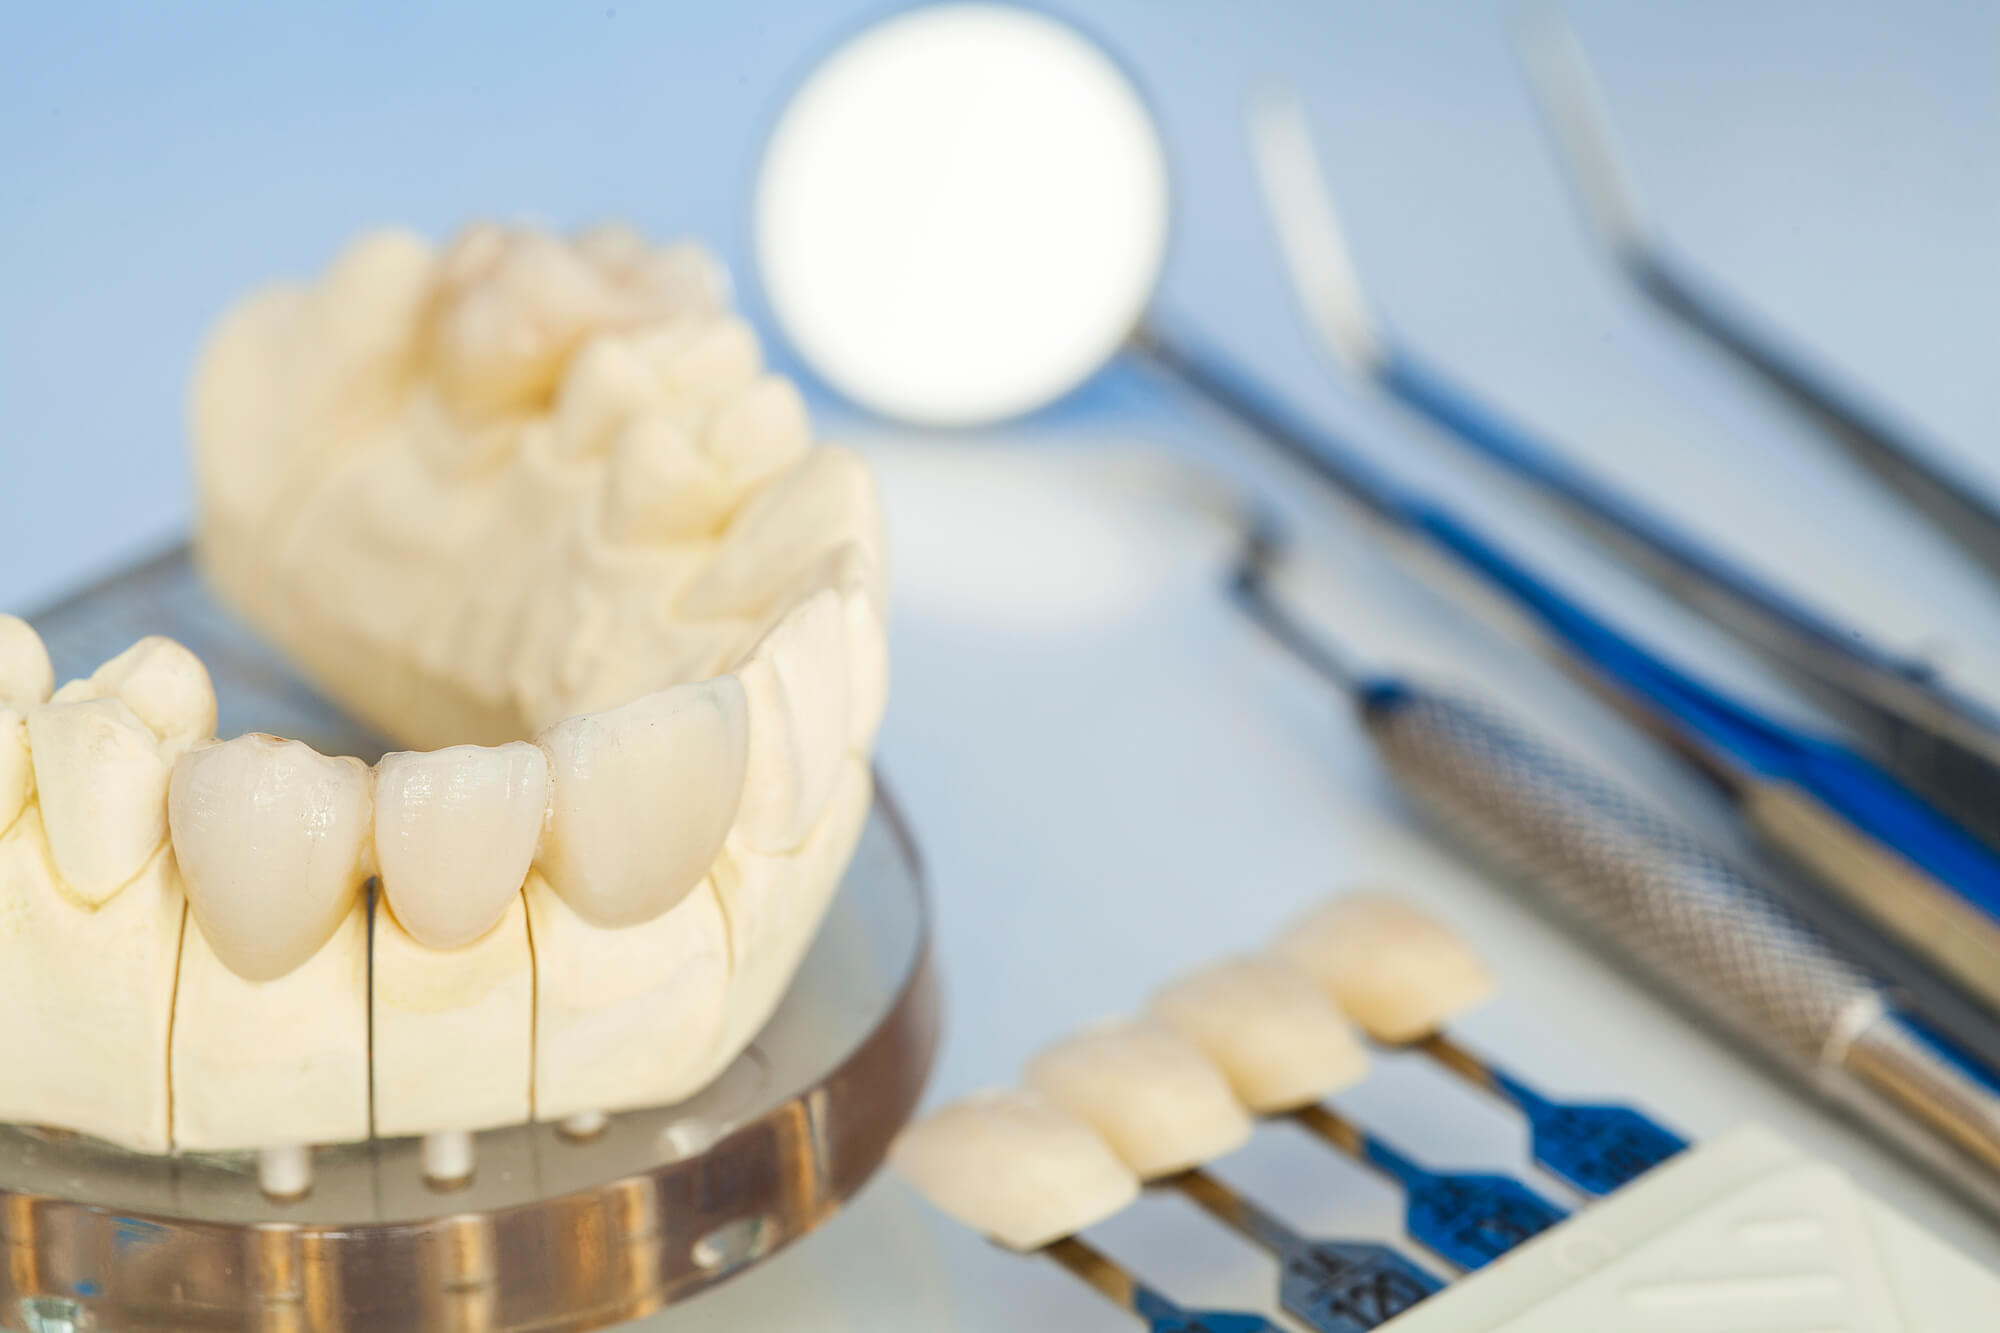 dental tools for same day crowns Miami